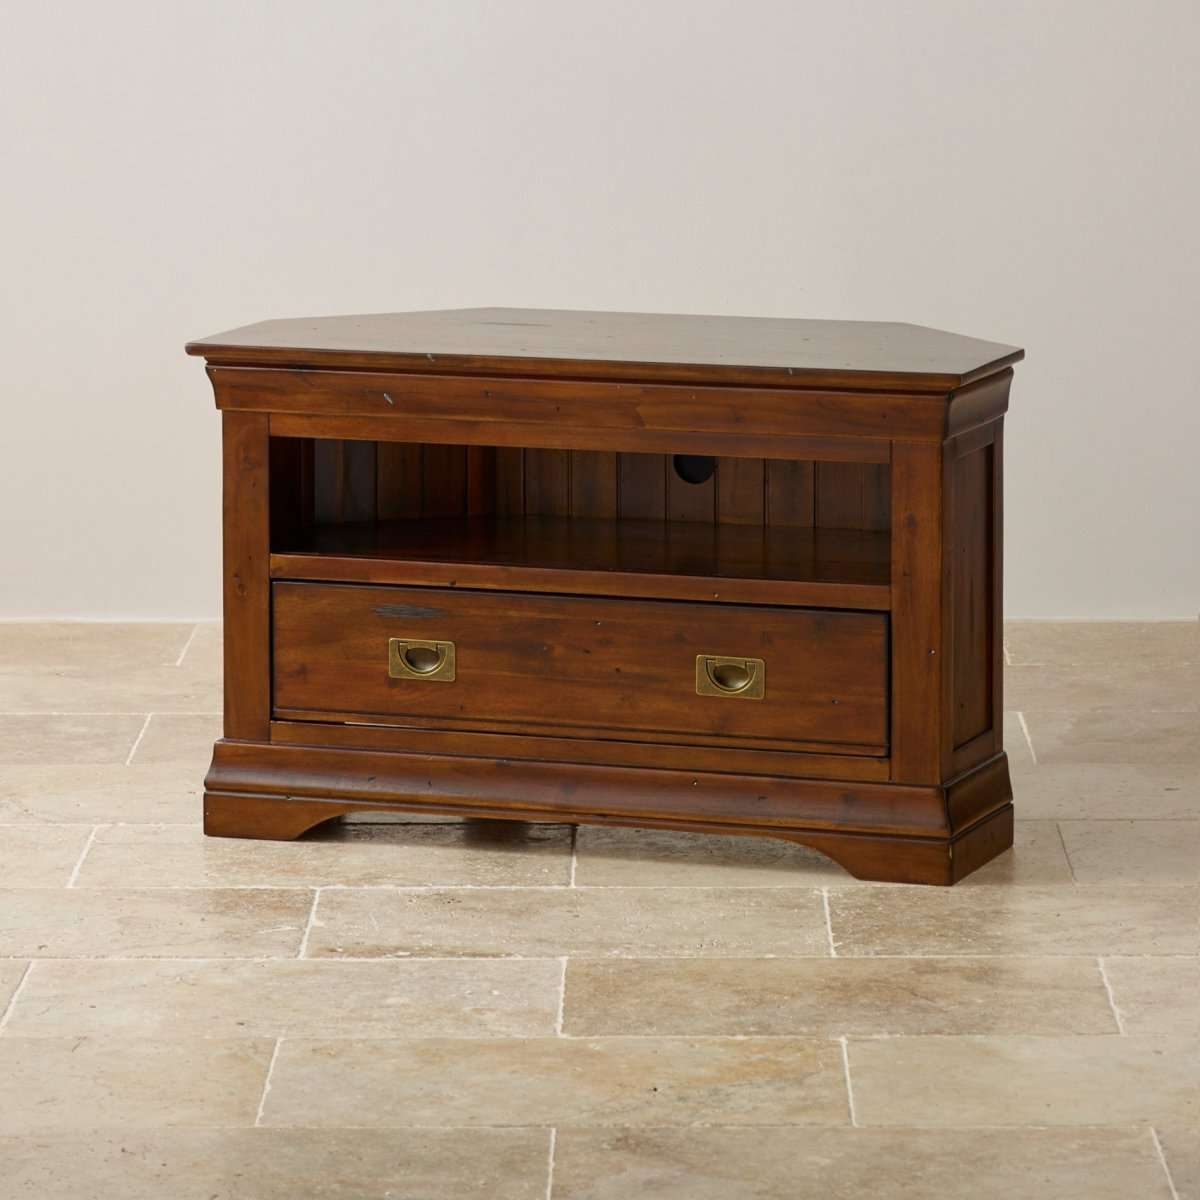 Victoria Corner Tv Cabinet In Solid Acacia | Oak Furniture Land With Corner Tv Cabinets (View 17 of 20)